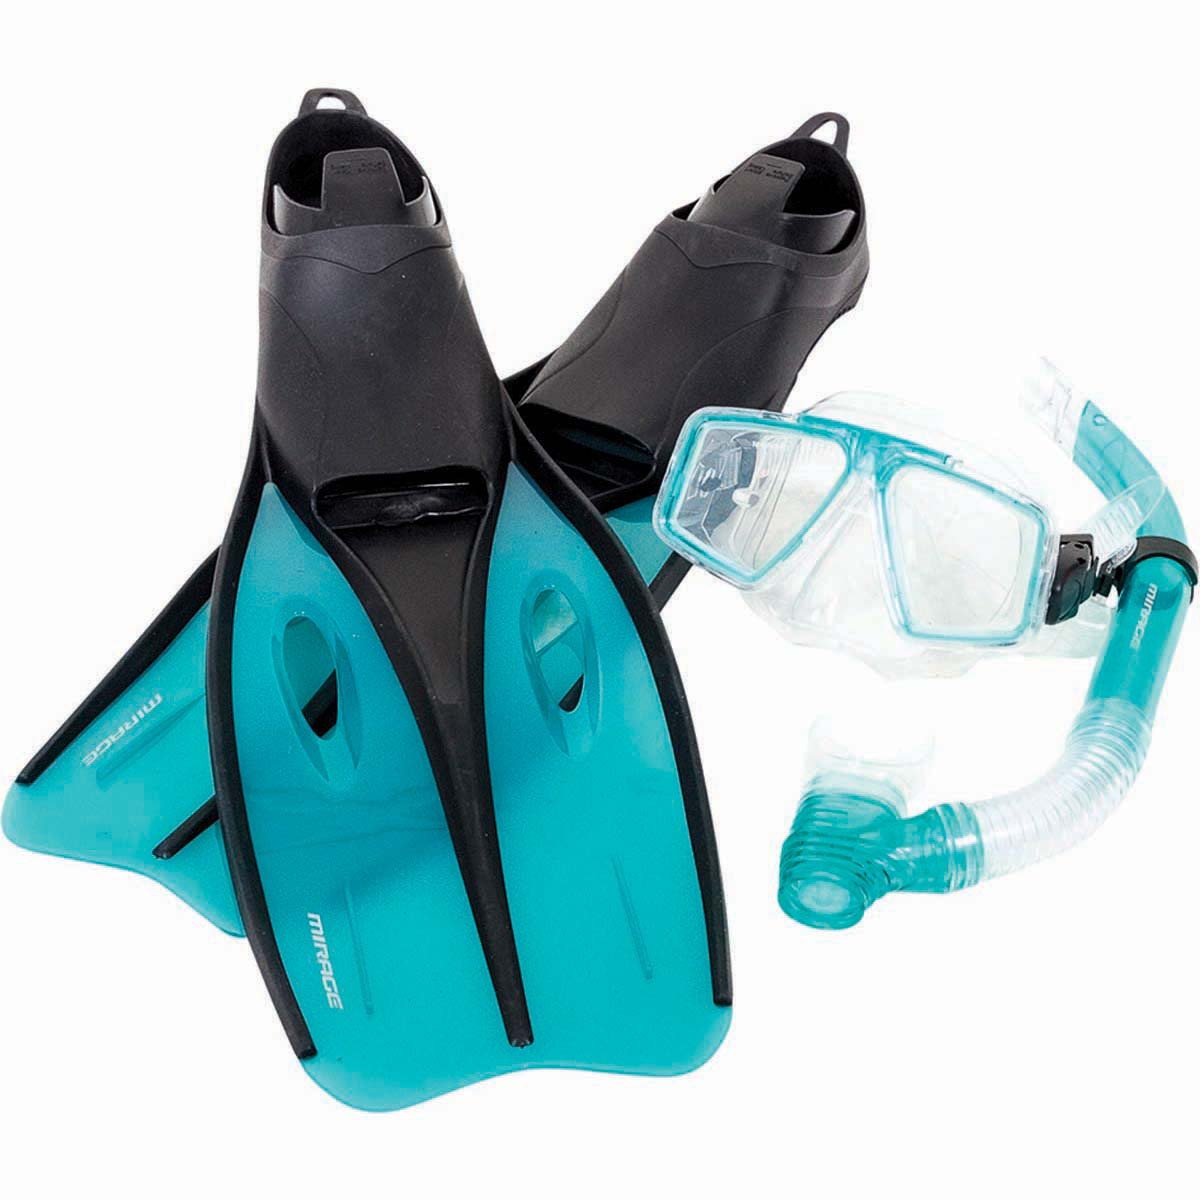 snorkel gear for Christmas